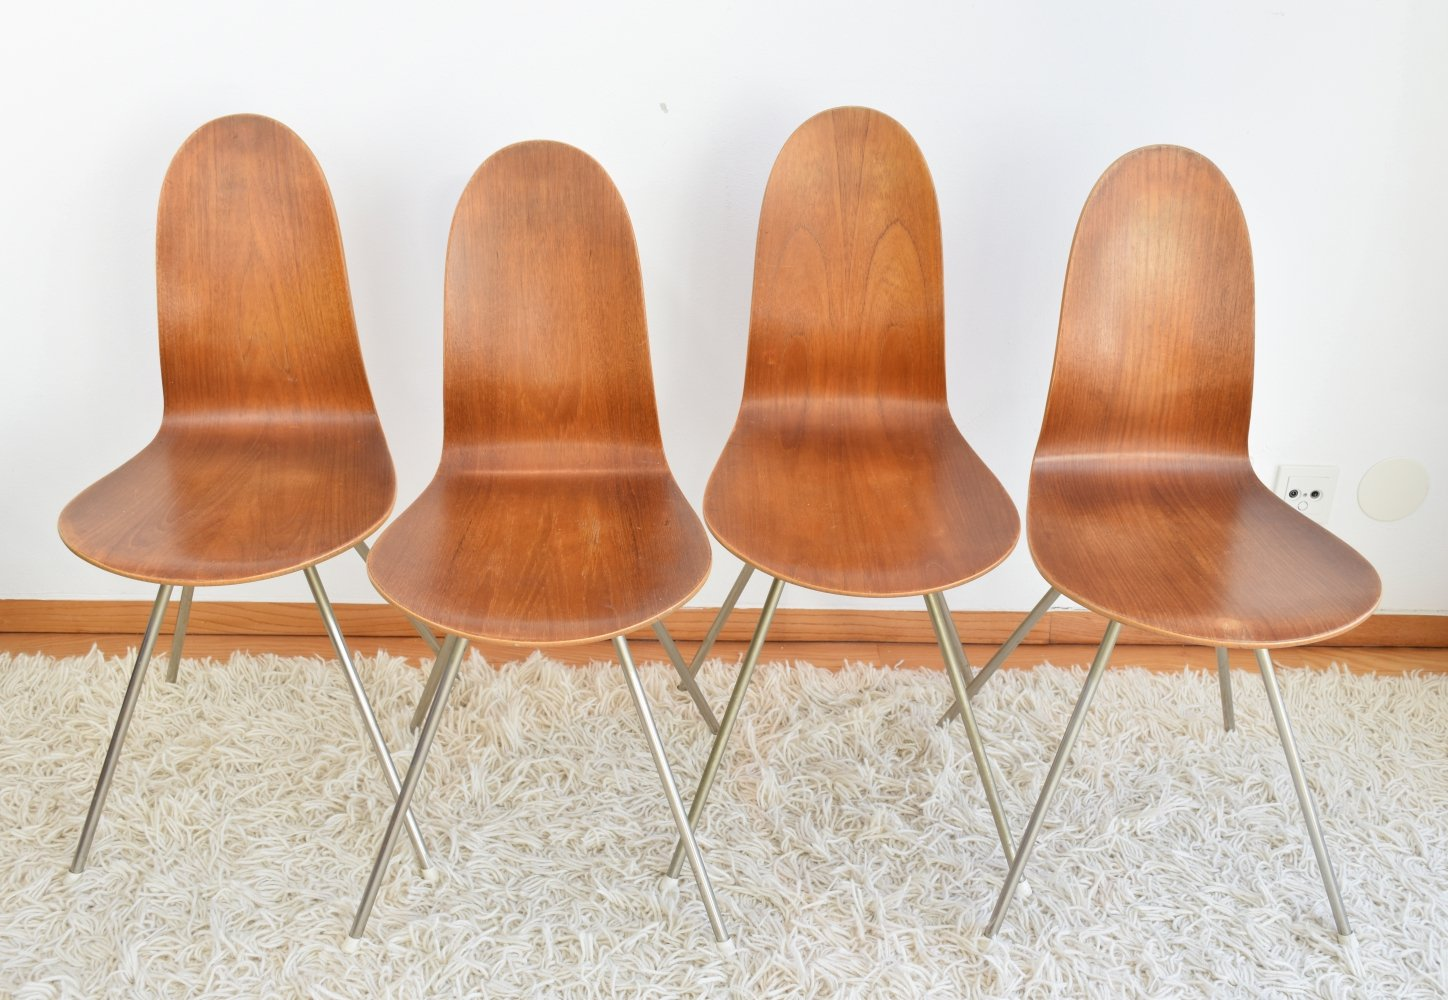 Arne Jacobsen First Edition 3106 Tongue Chairs, 1955